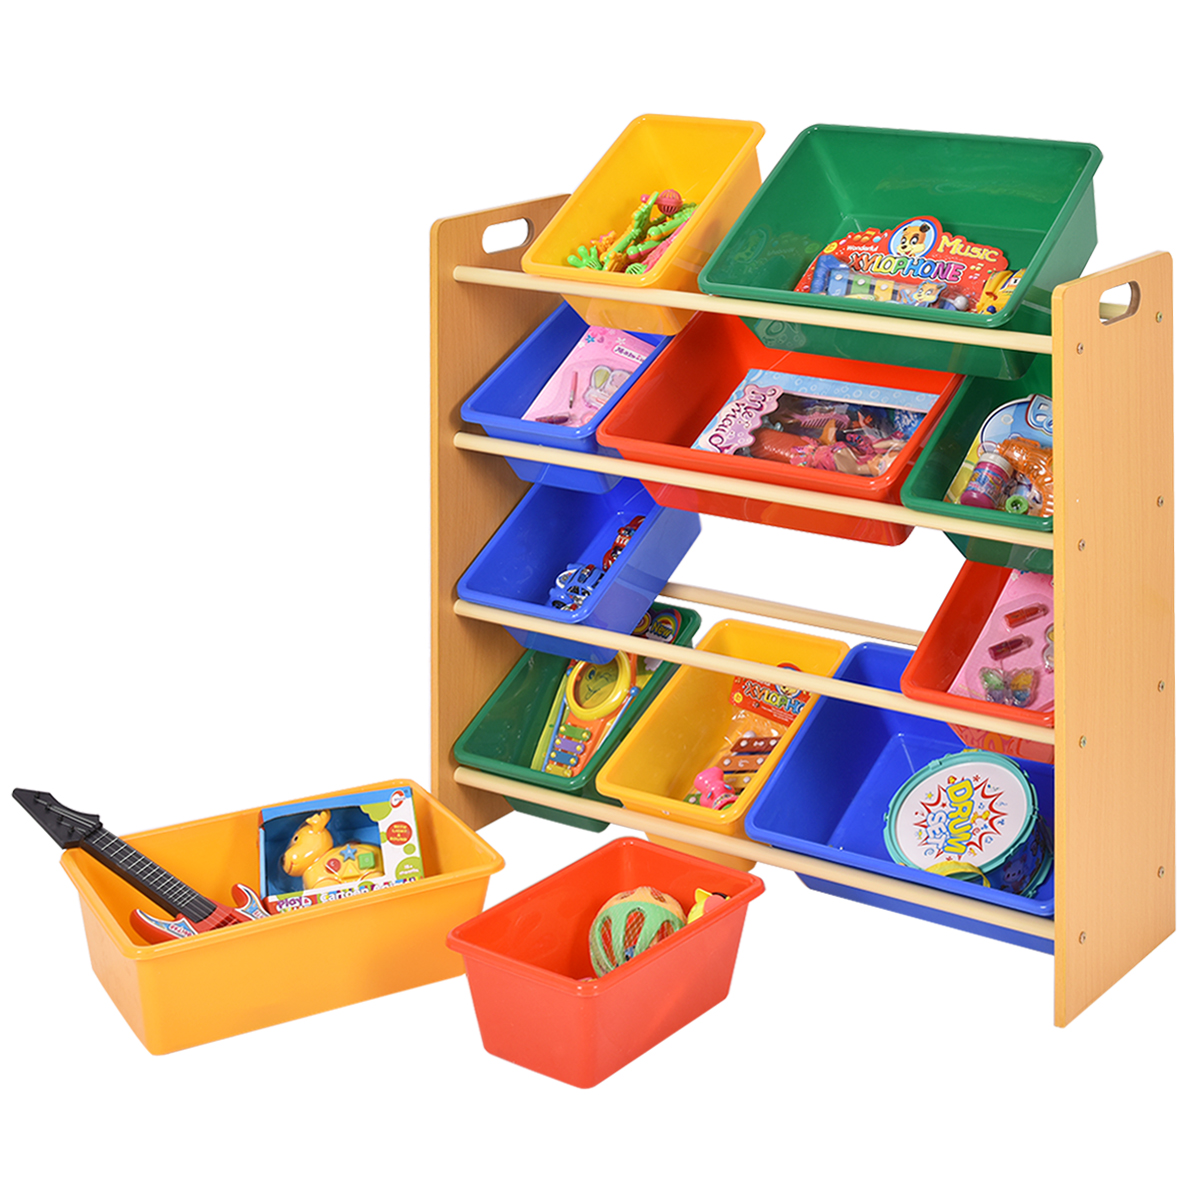 Costway Toy Bin Organizer Kids Childrens Storage Box Playroom Shelf Drawer by Costway